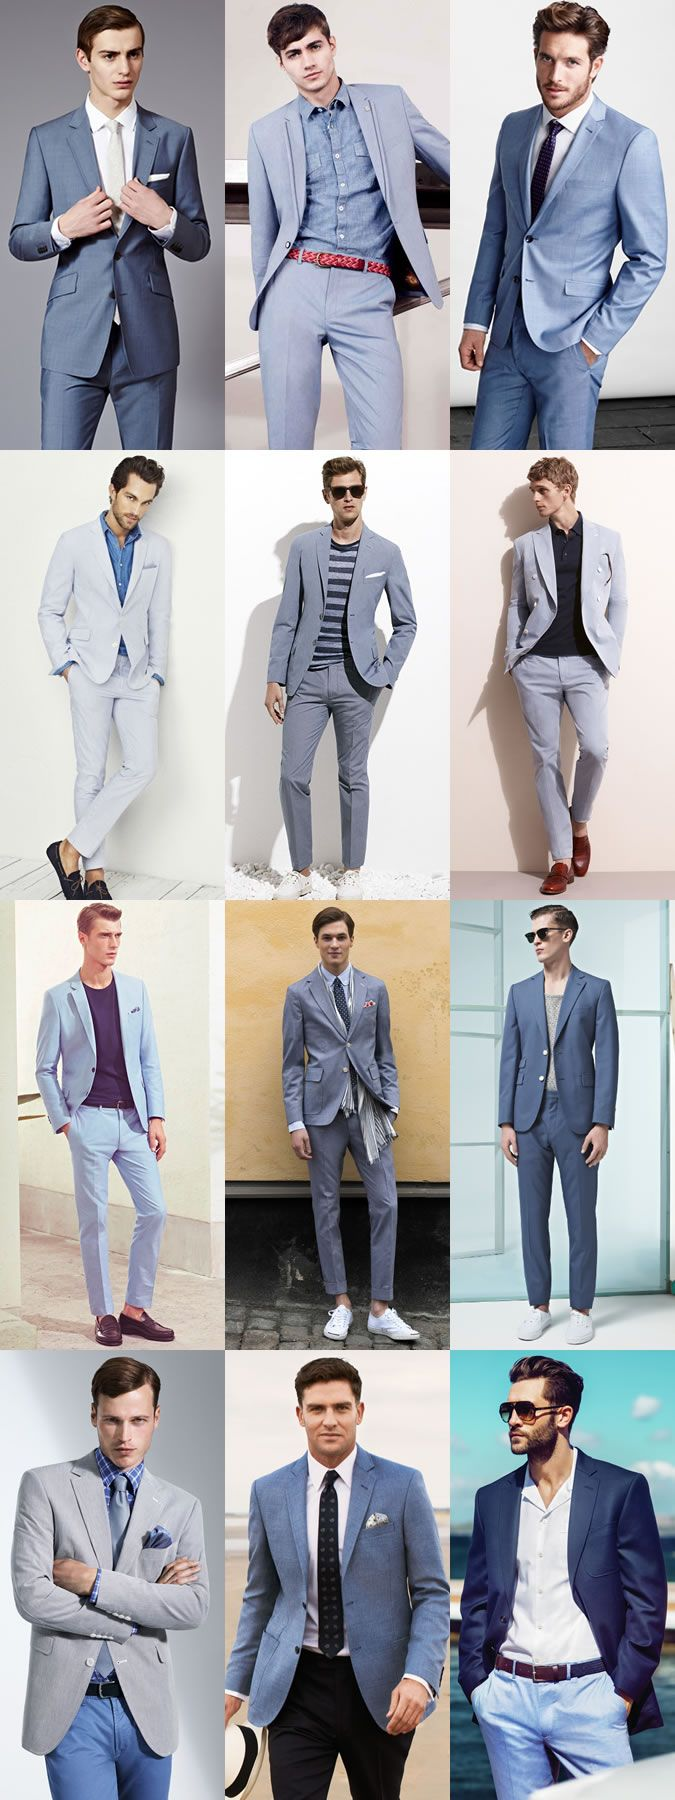 5 Key Men's Suit Styles For 2014 Spring/Summer: The Light Blue ...